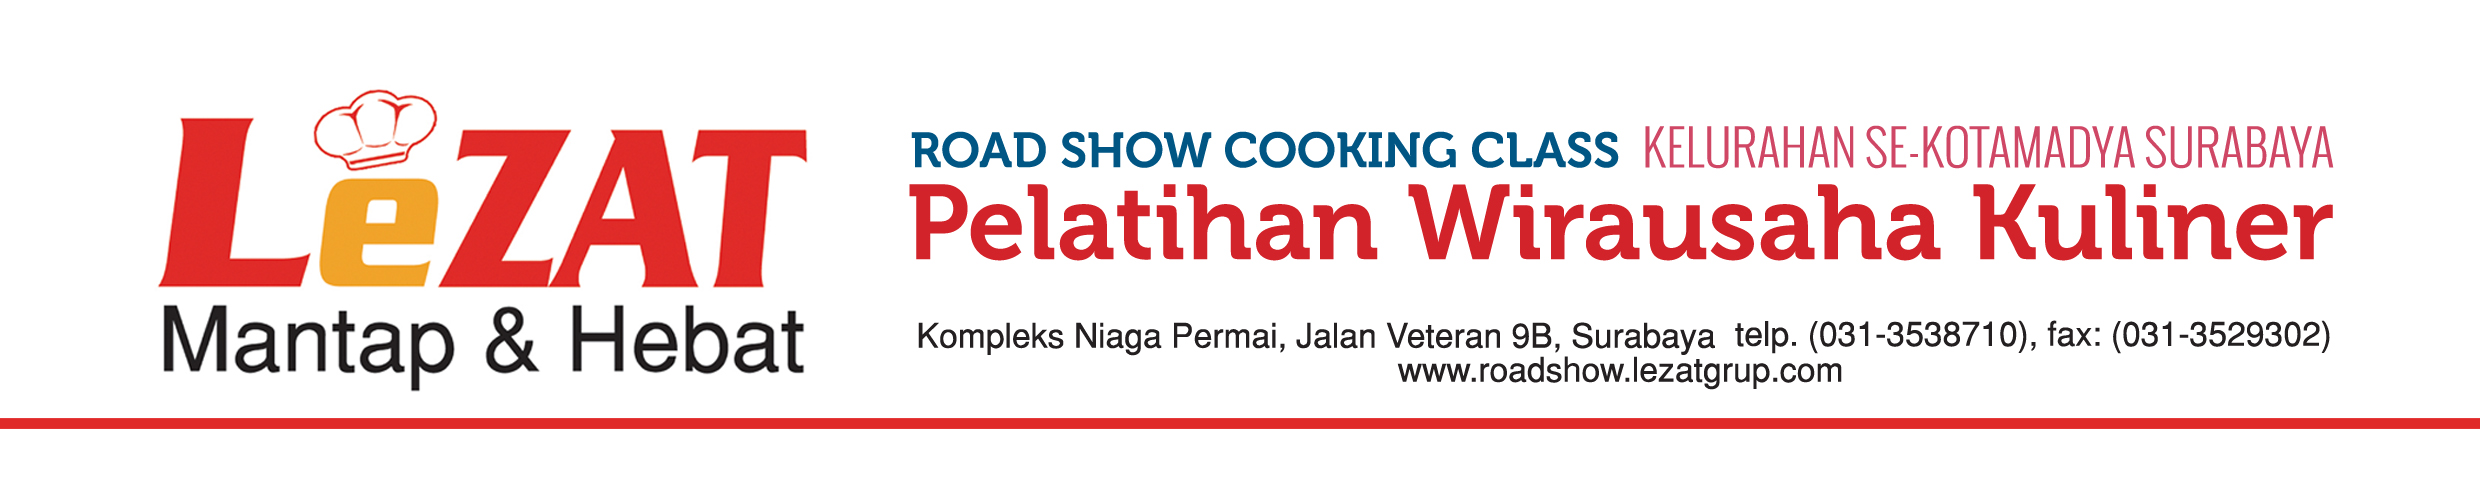 cookingclassmantap